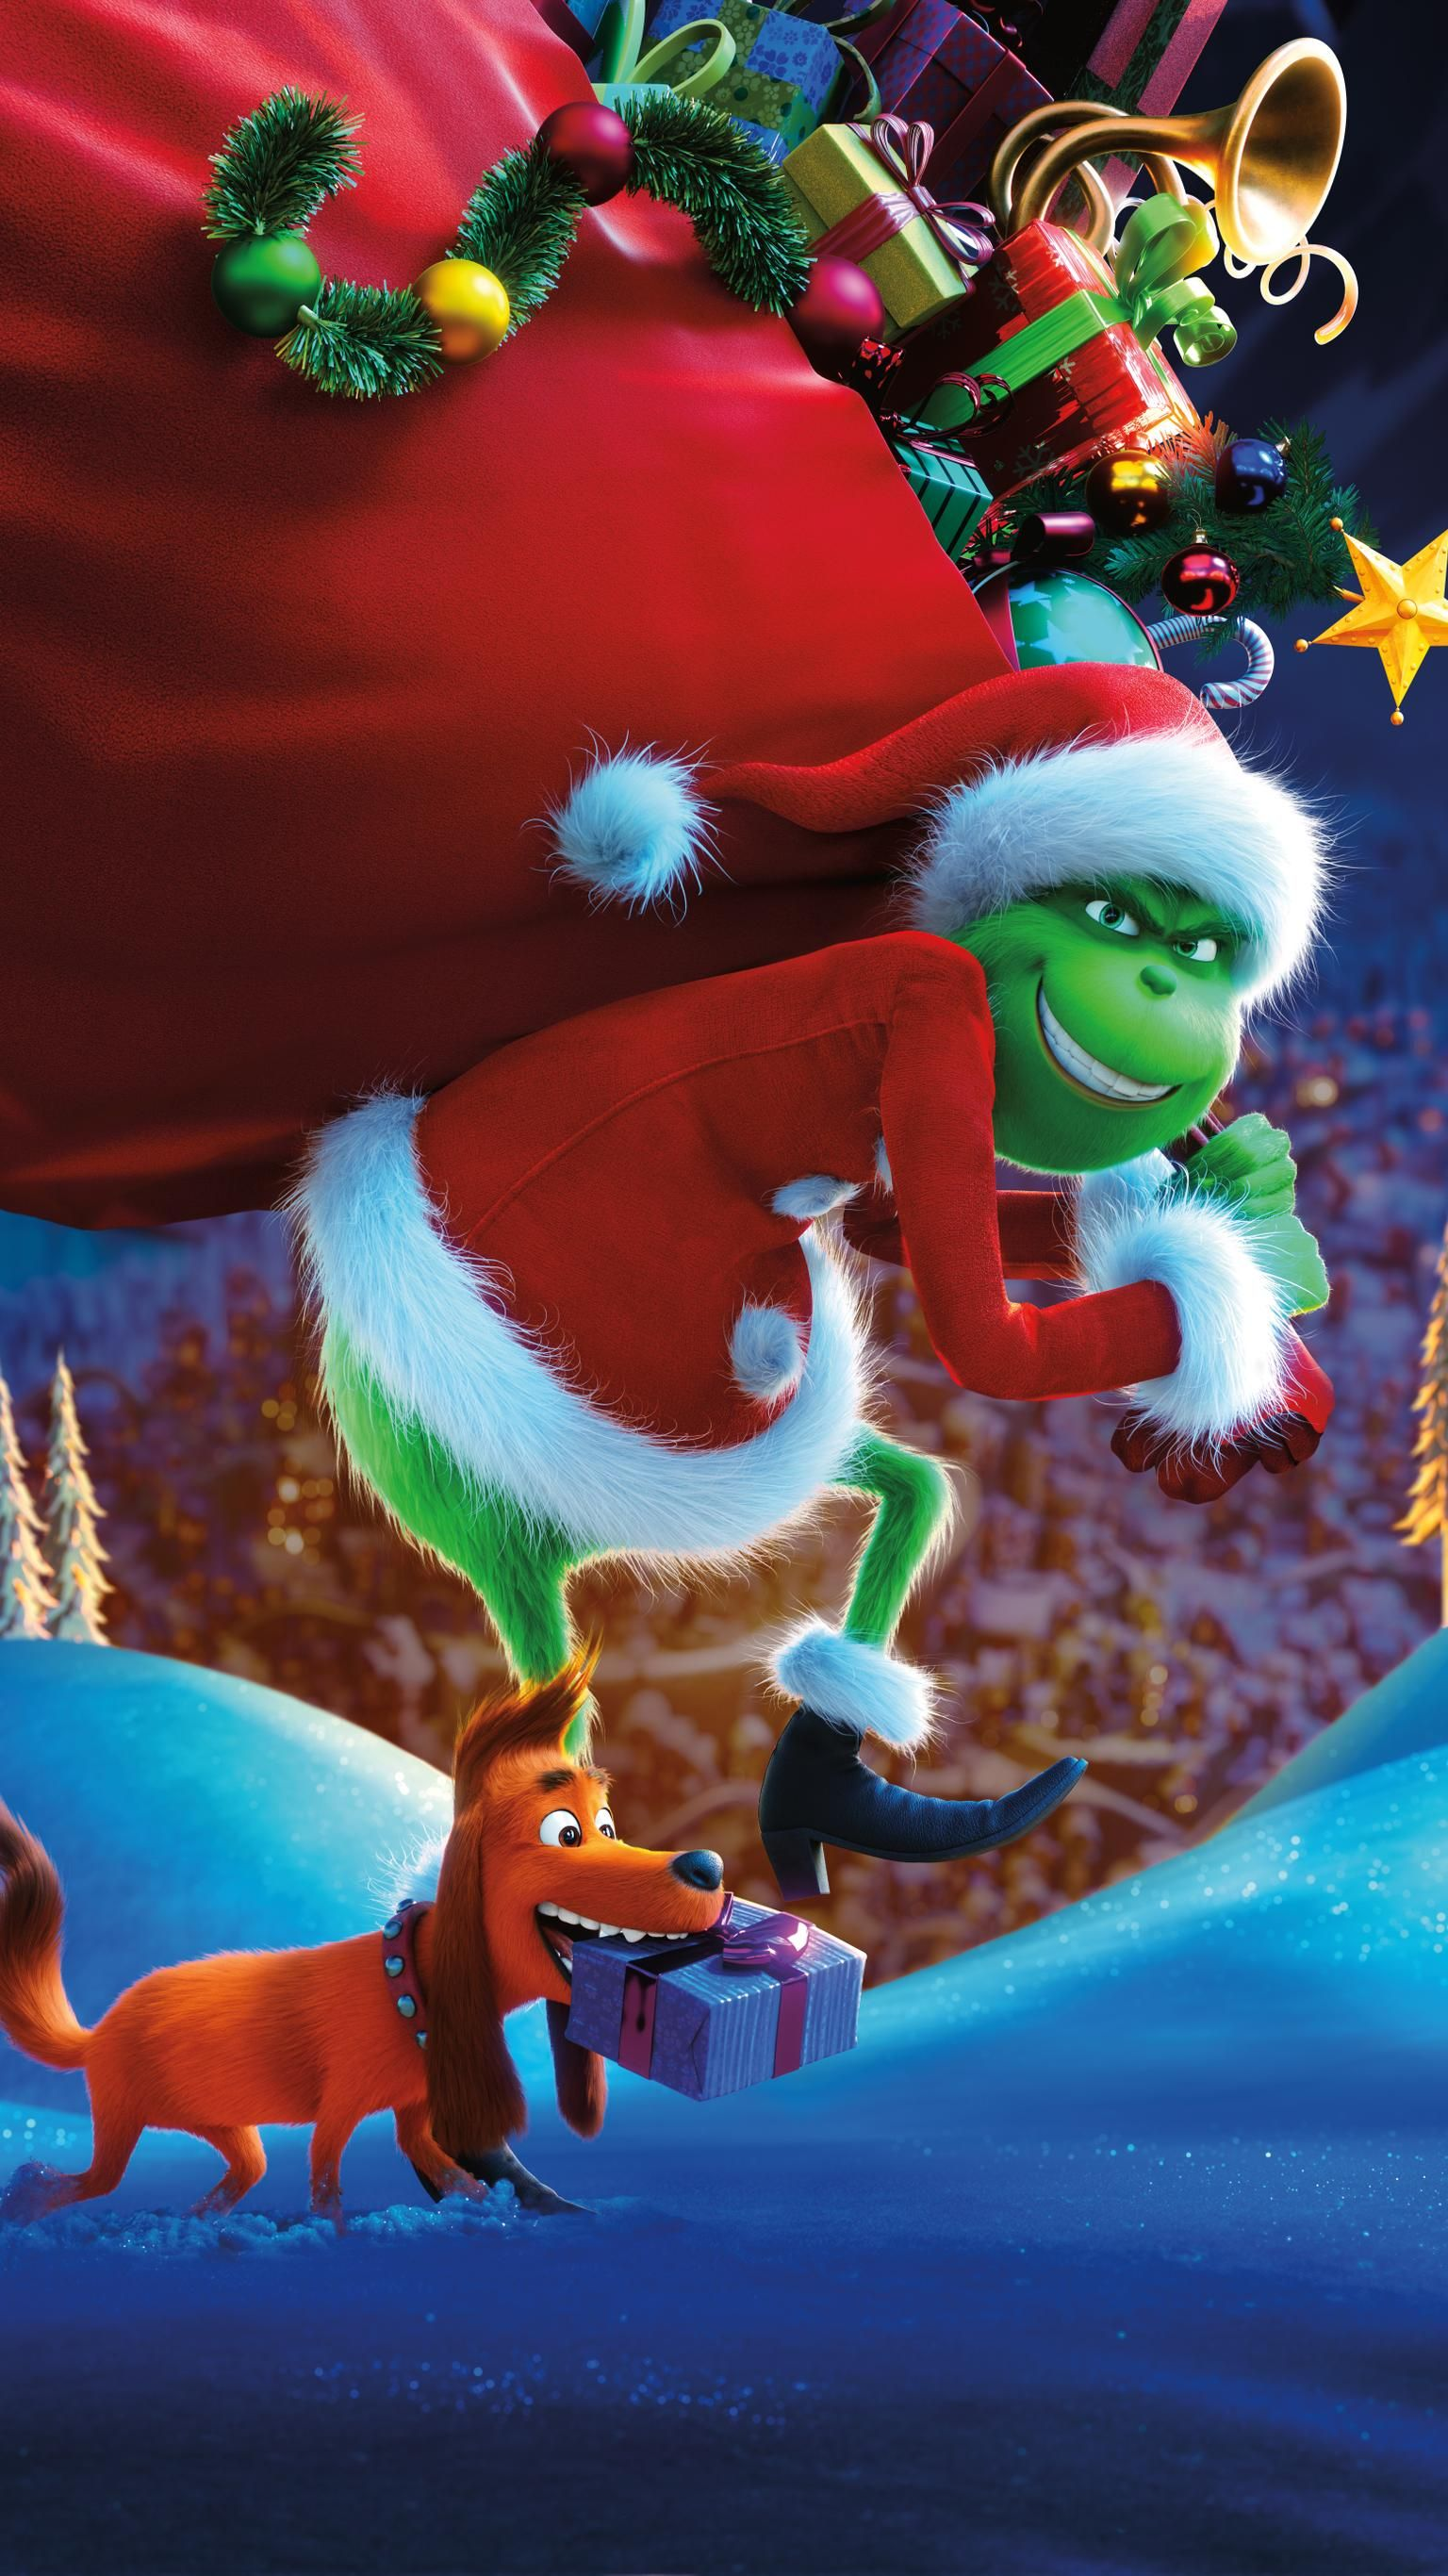 The Grinch 2018 Phone Wallpaper Moviemania Christmas Phone Wallpaper Wallpaper Iphone Christmas Christmas Wallpaper Iphone Tumblr